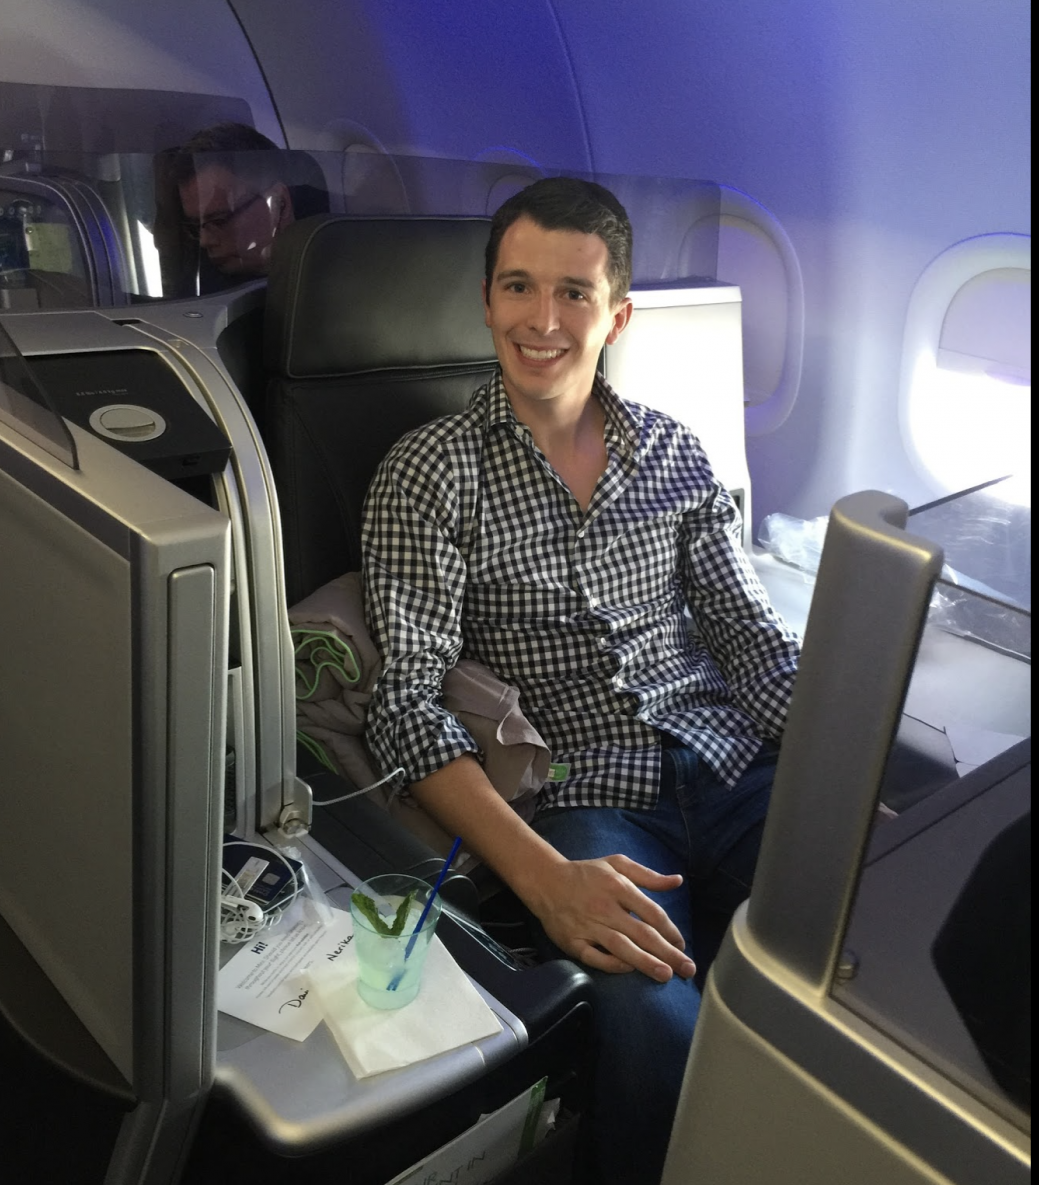 Potential Game Changer: JetBlue Business Class to Europe